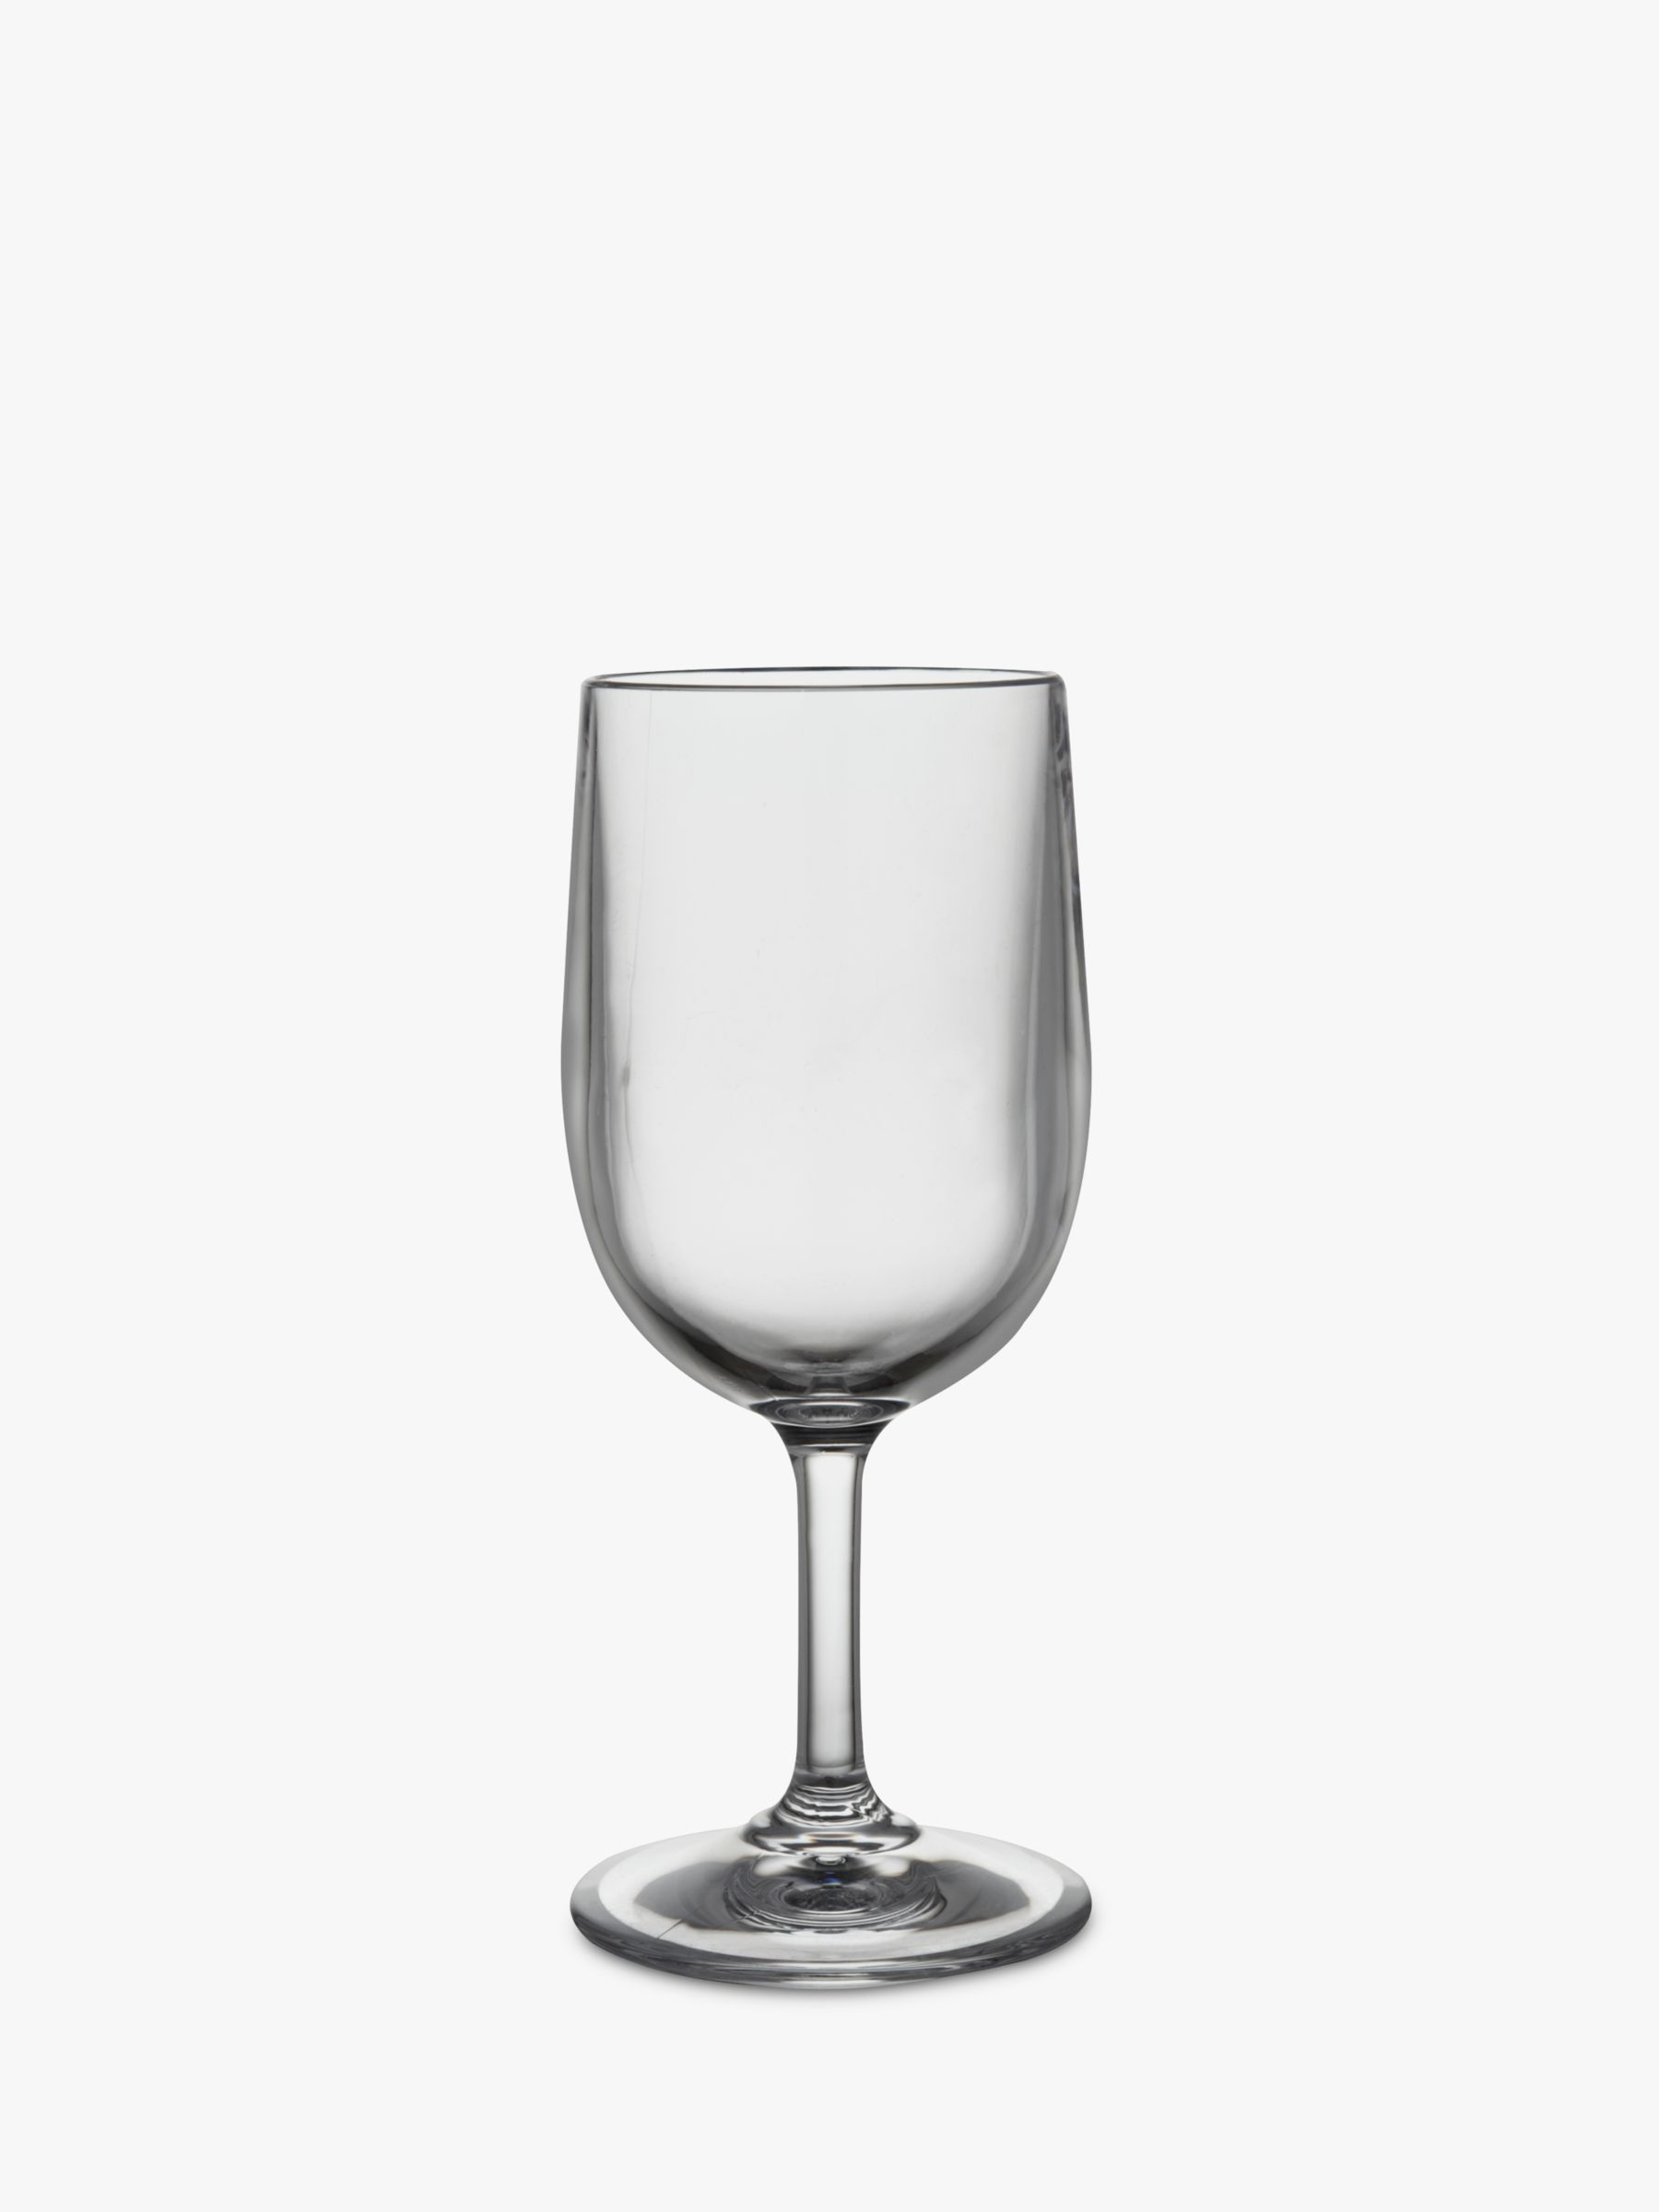 Strahl Strahl Polycarbonate Picnic Wine Glass, Large